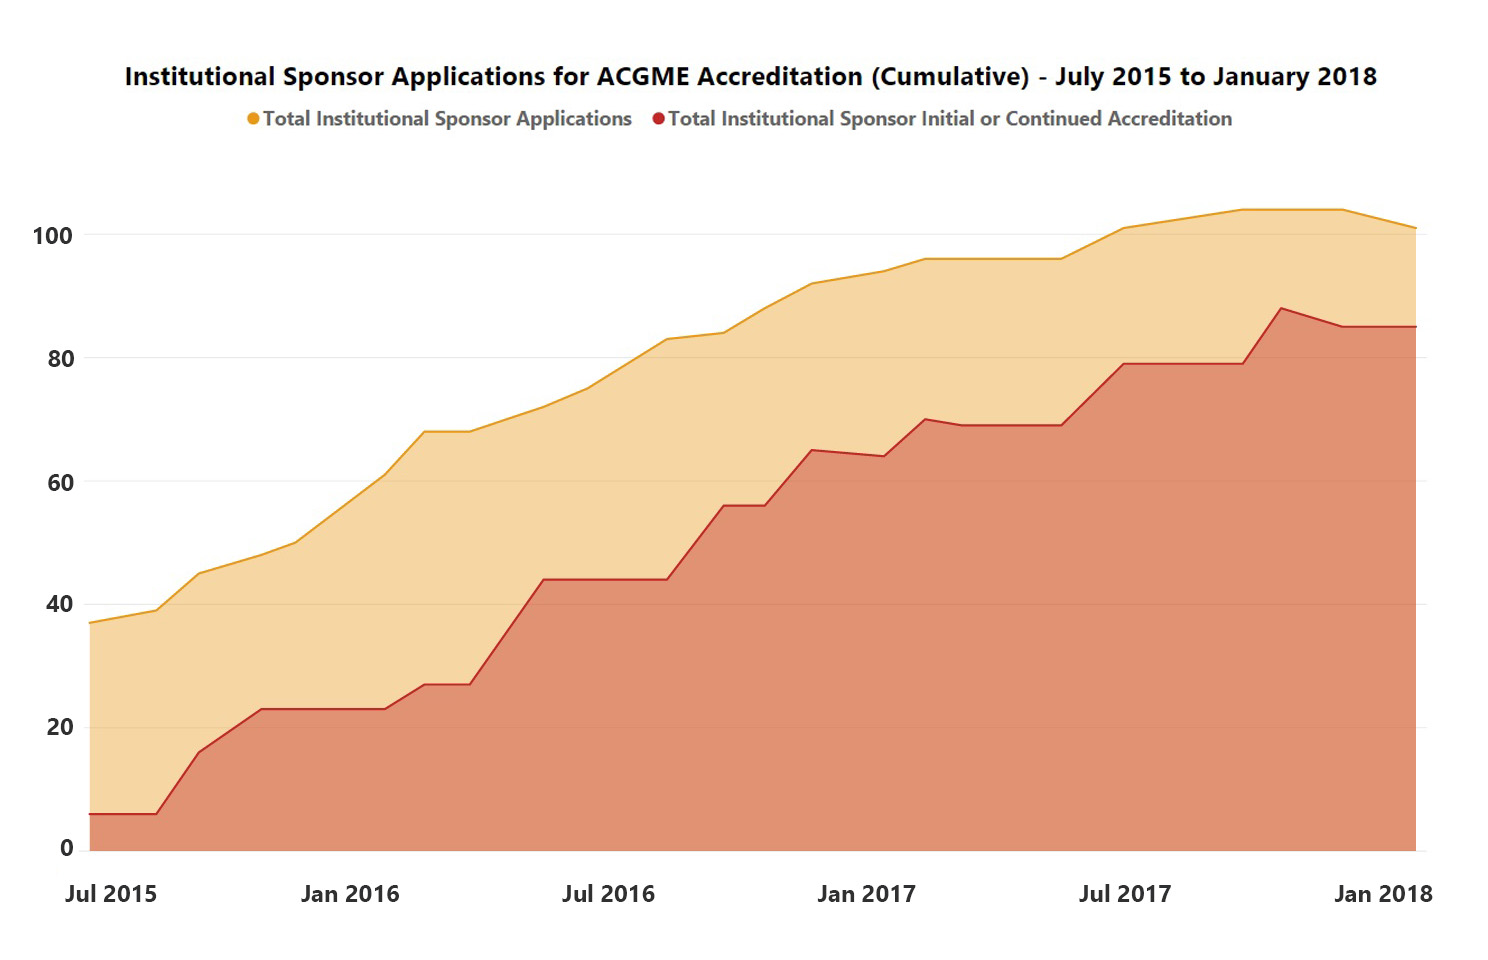 Institutional Sponsor Applications for ACGME Accreditation - July 2015 to January 2018